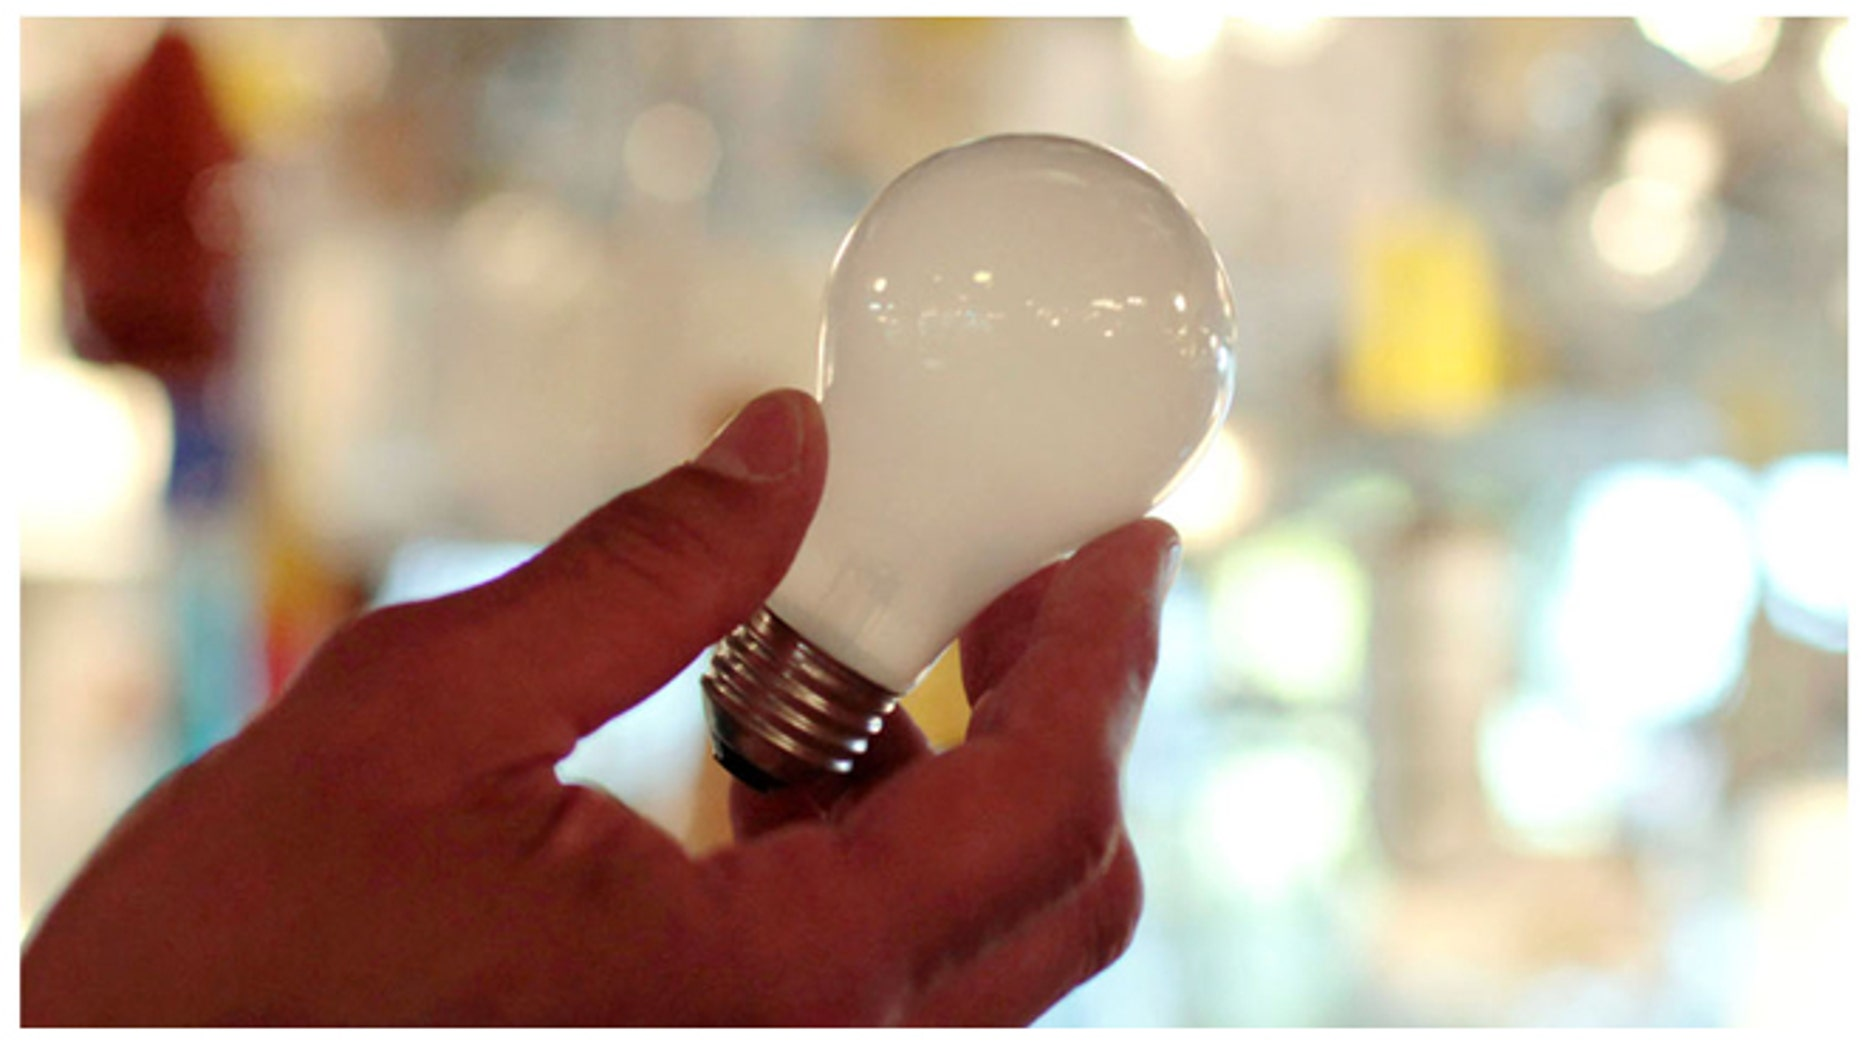 A 100 Watt Incandescent Light Bulb Seen At Royal Lighting In Los Angeles On Jan